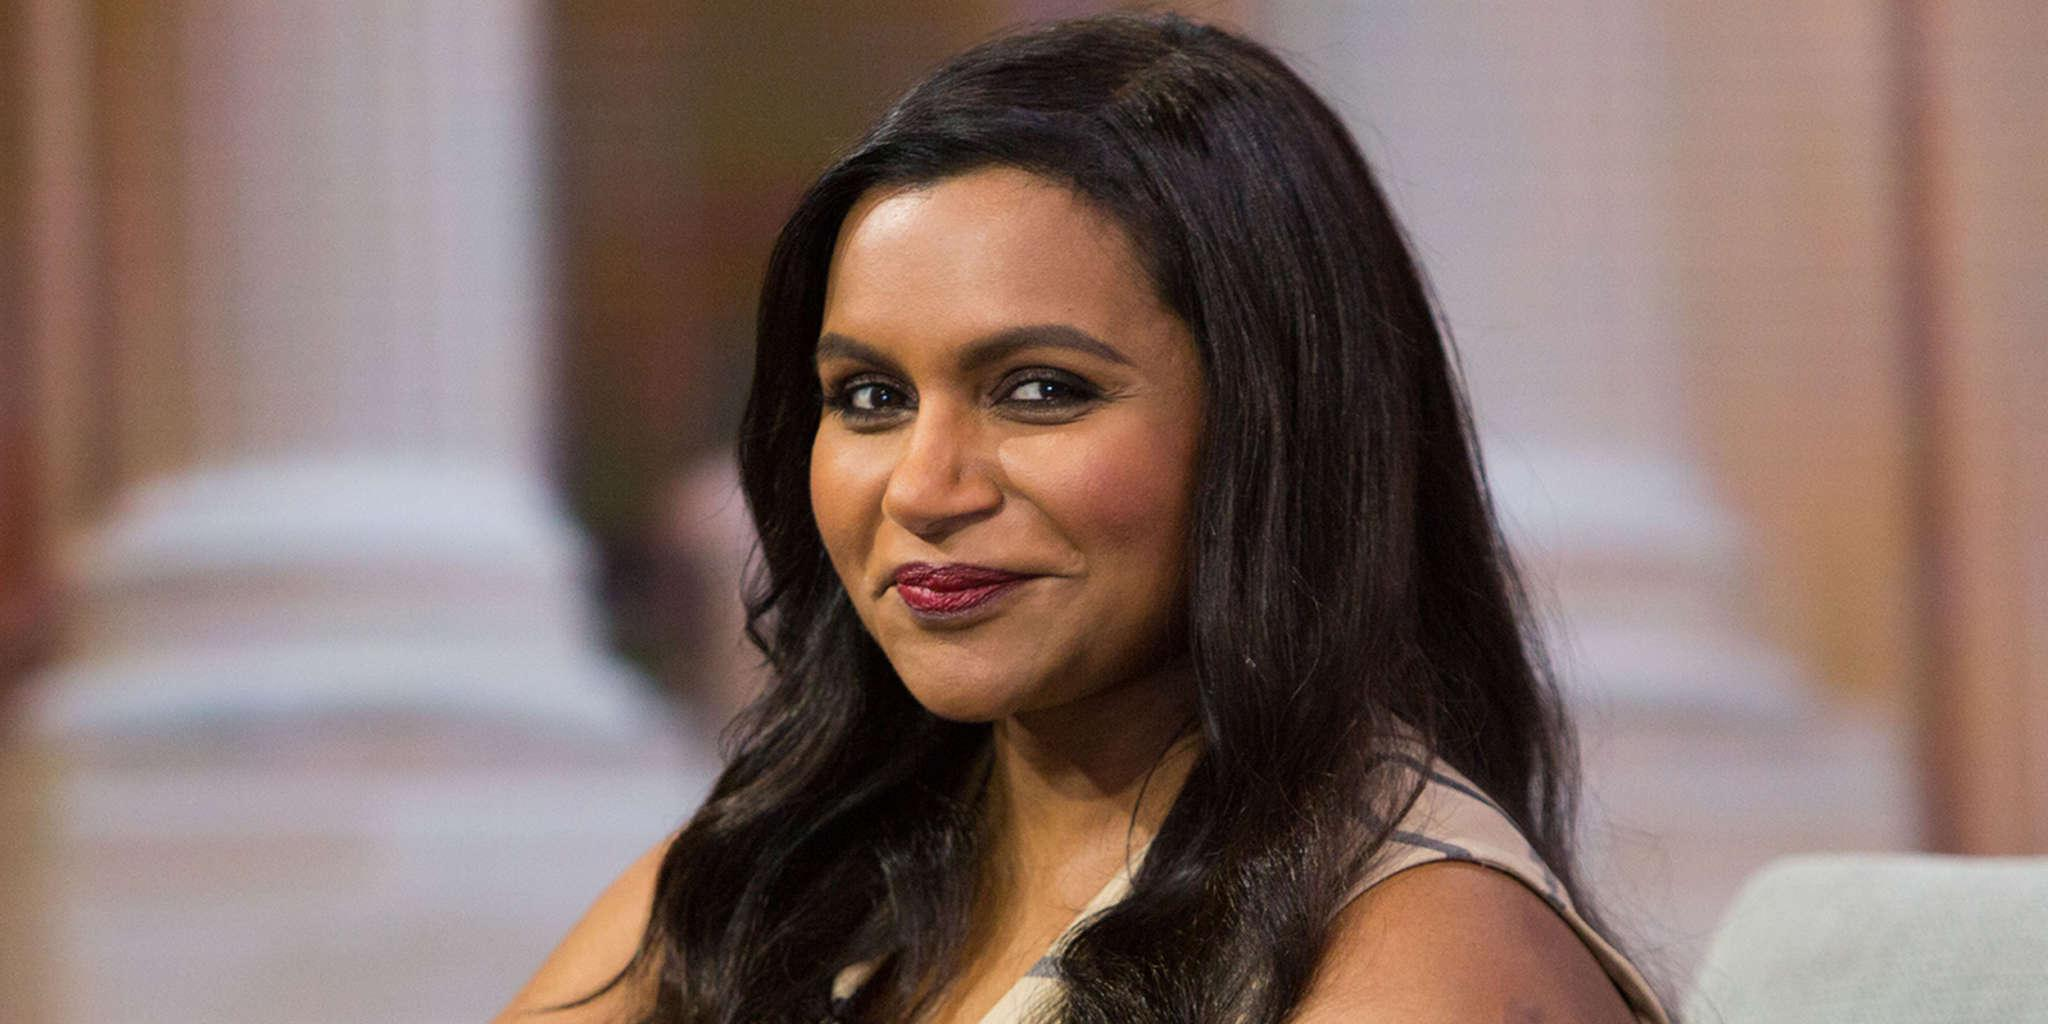 Mindy Kaling Opens Up About Working Hard And Being A New Mother At The Same Time!